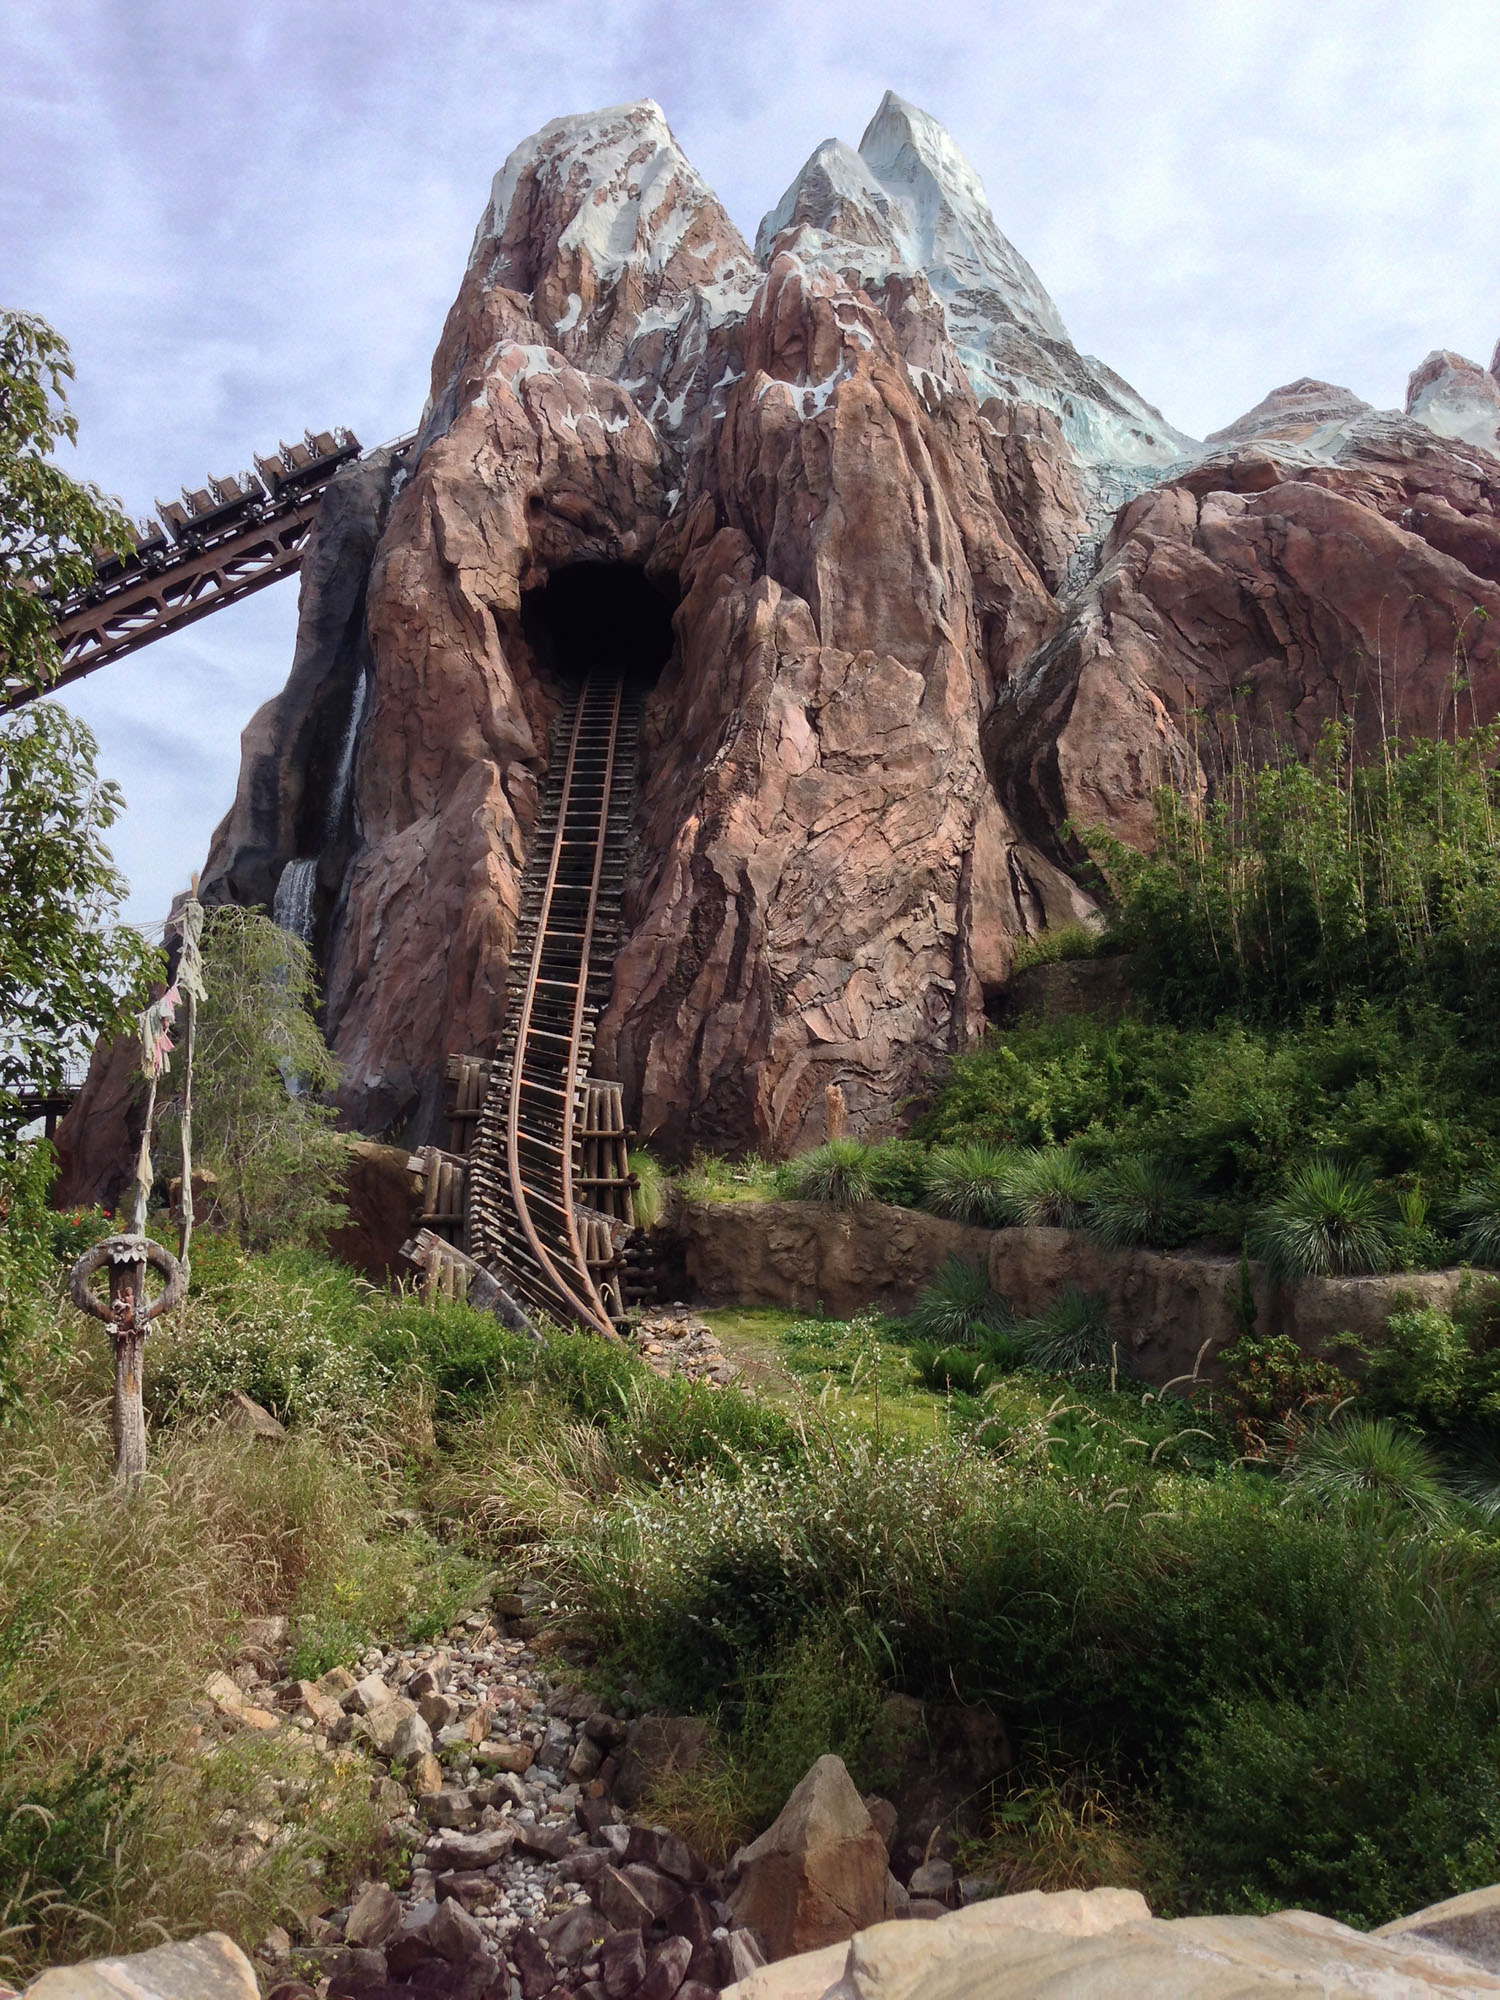 Mt. Everest Terror Ride!